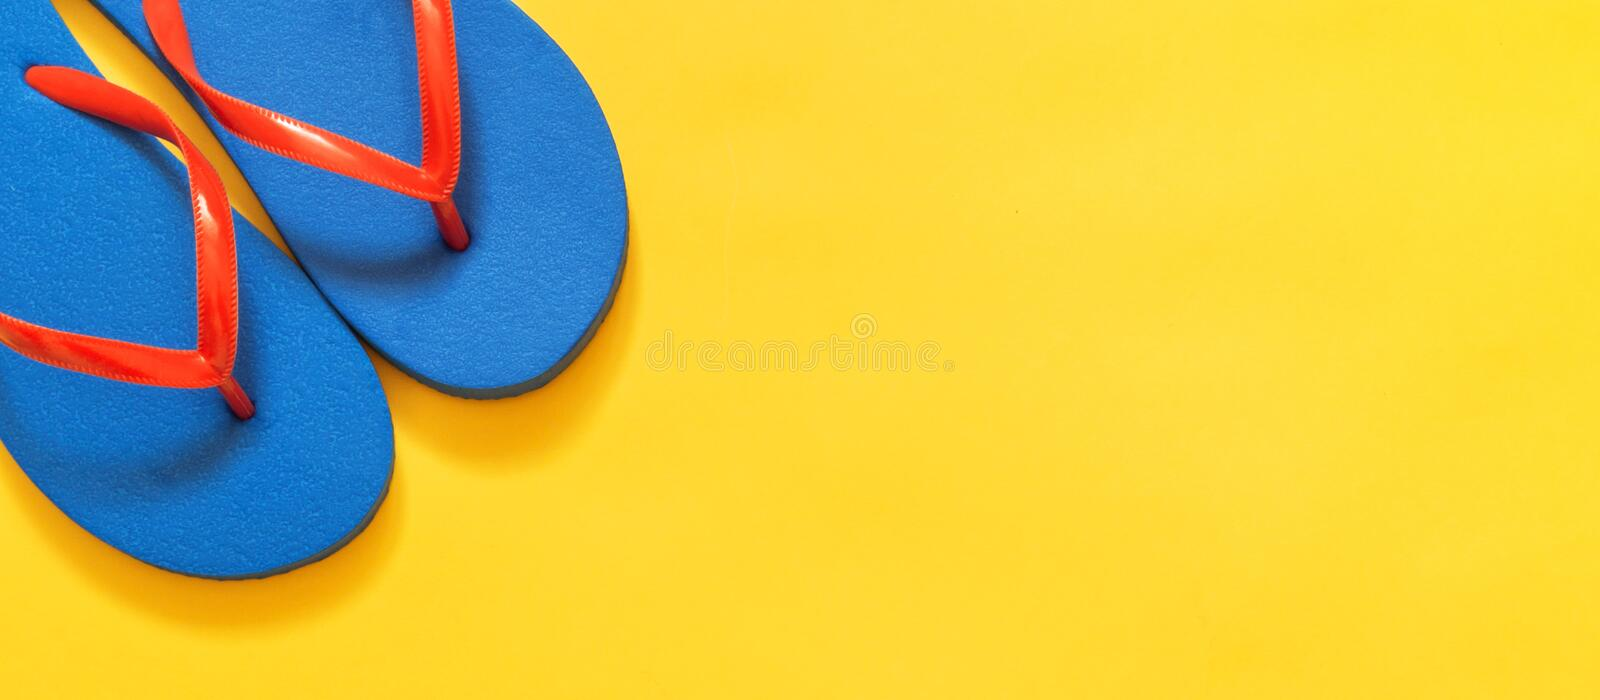 Travel vacation background. Flip flops on a yellow background. stock photos